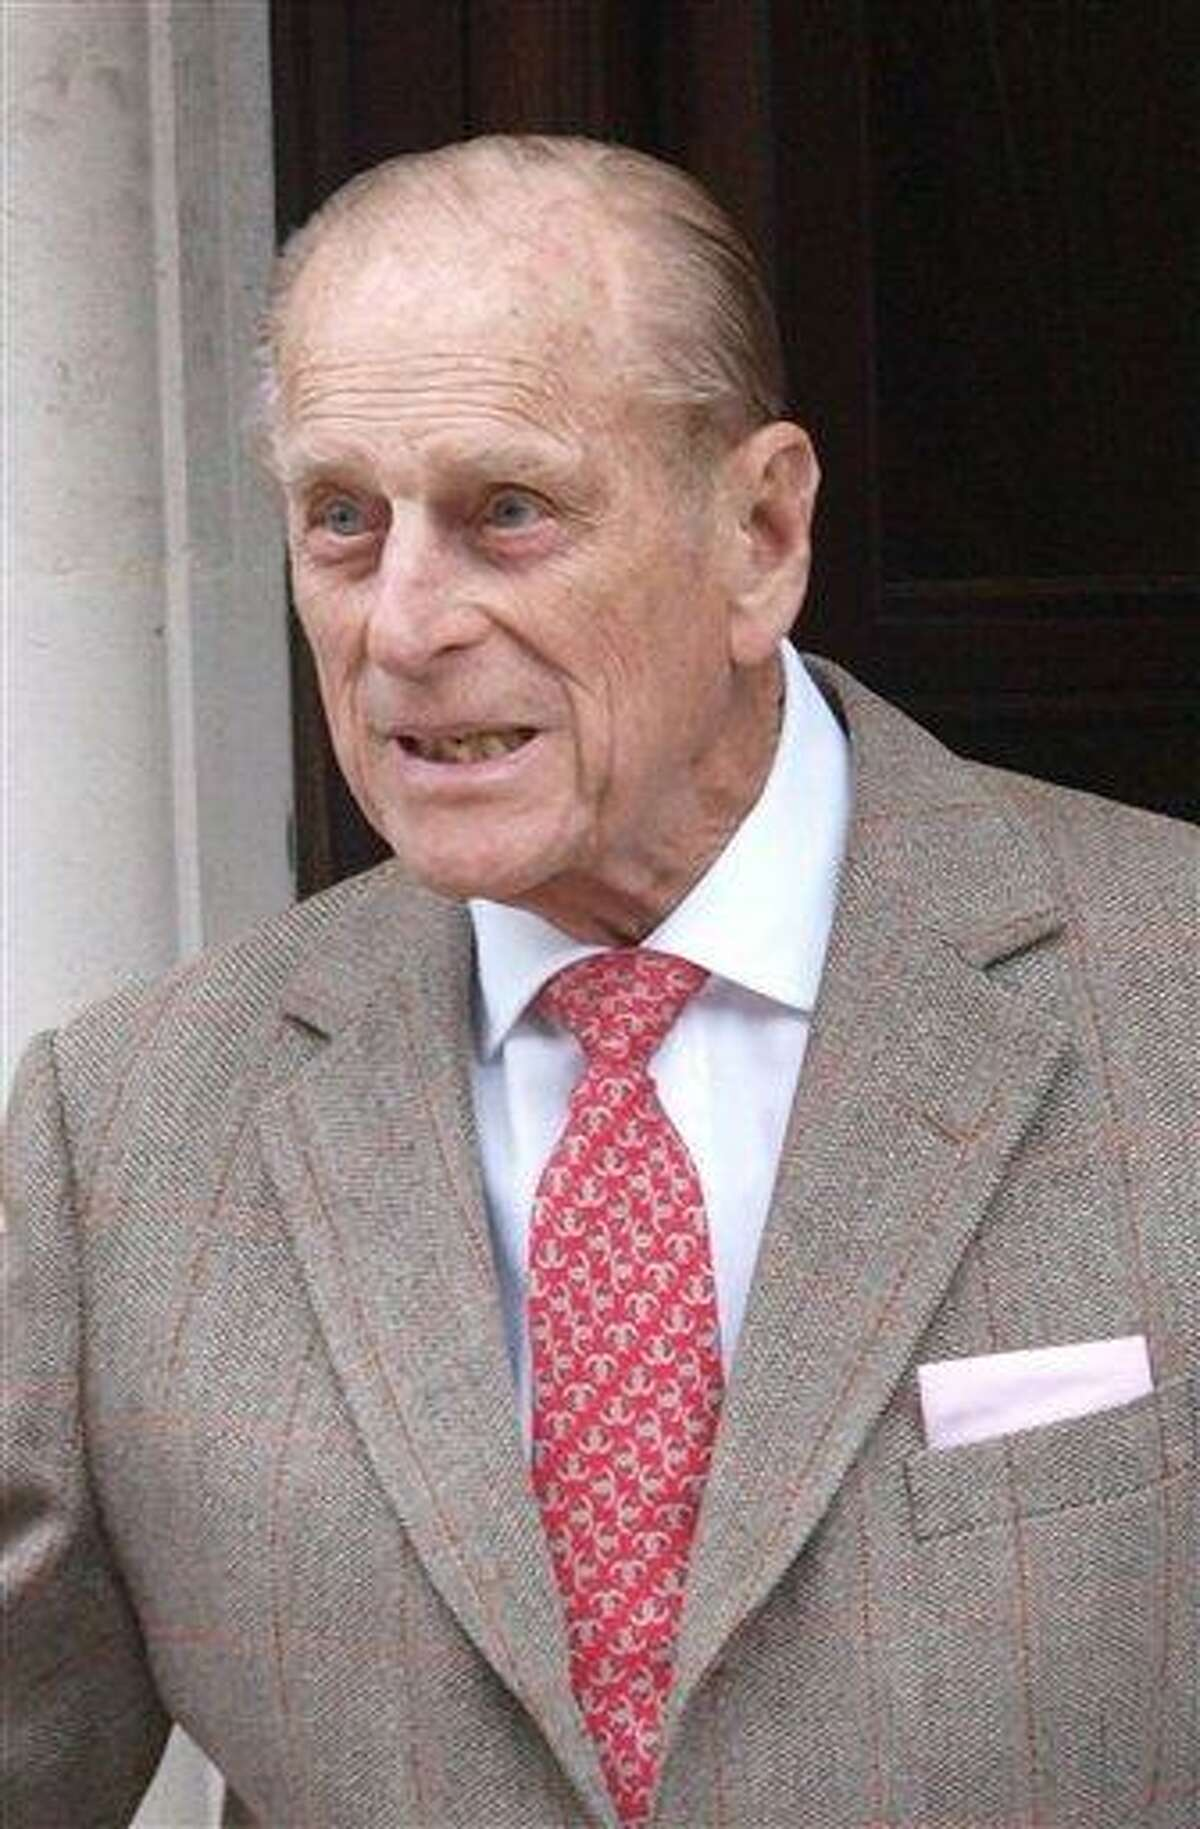 Prince Philip, Duke of Edinburgh, leaves King Edward VII Hospital in central London Saturday after being treated for a bladder infection. The duke will celebrate his 91st birthday Sunday privately with members of the family. On Friday he enjoyed the company of grandsons the Duke of Cambridge and Prince Harry who paid a short, private visit to the hospital. Associated Press